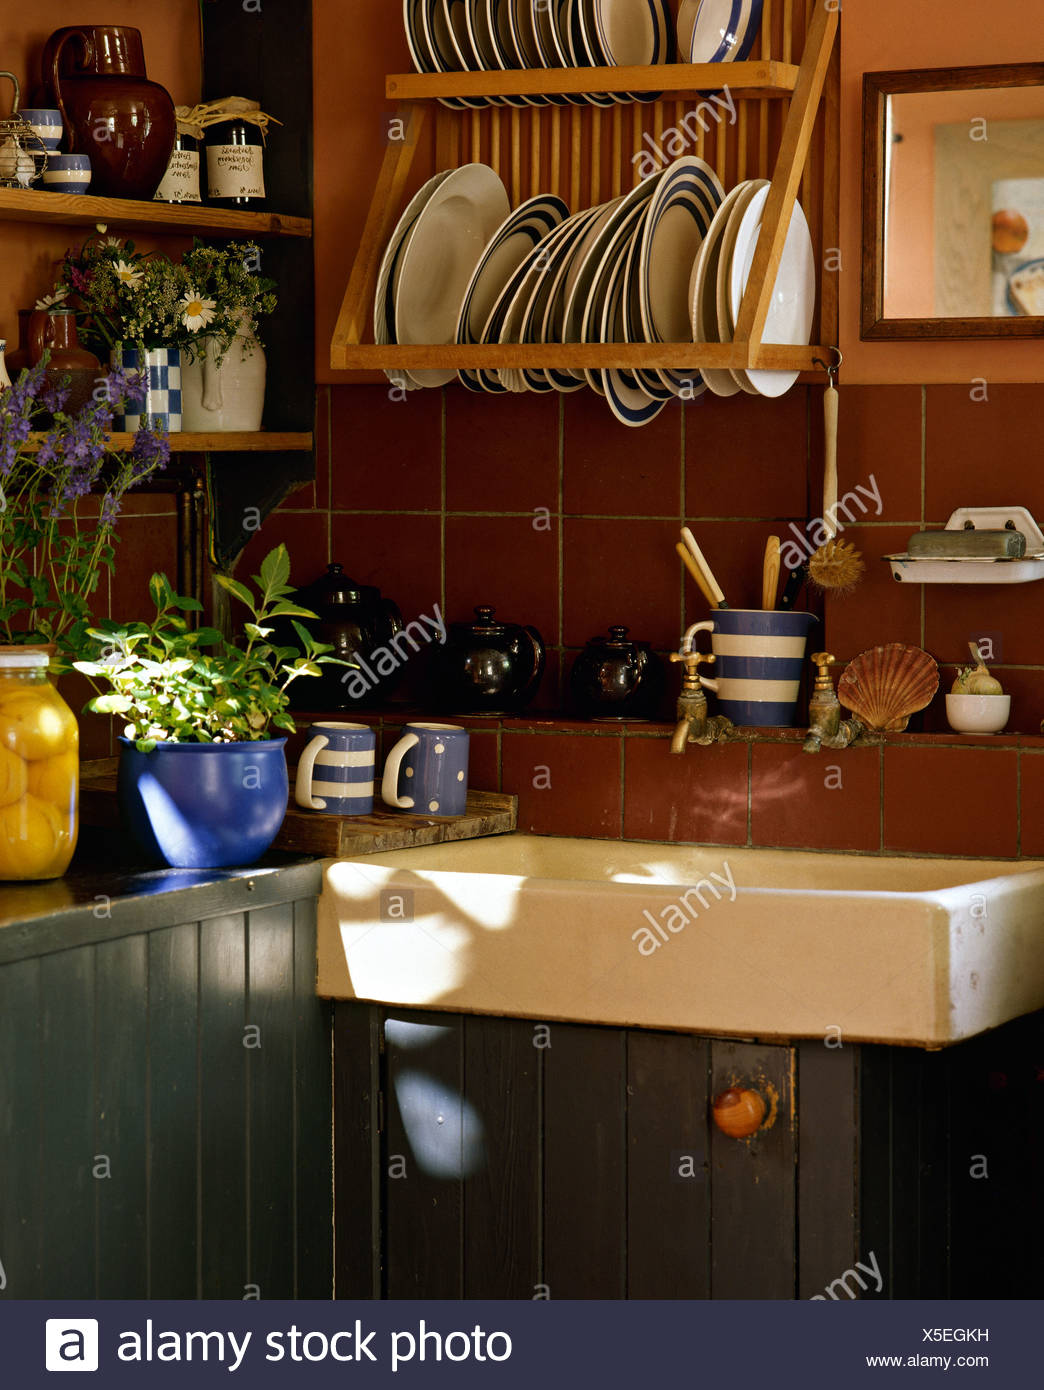 Blue white striped plates on wooden rack above belfast sink in cottage kitchen with brown tiles and blue painted units